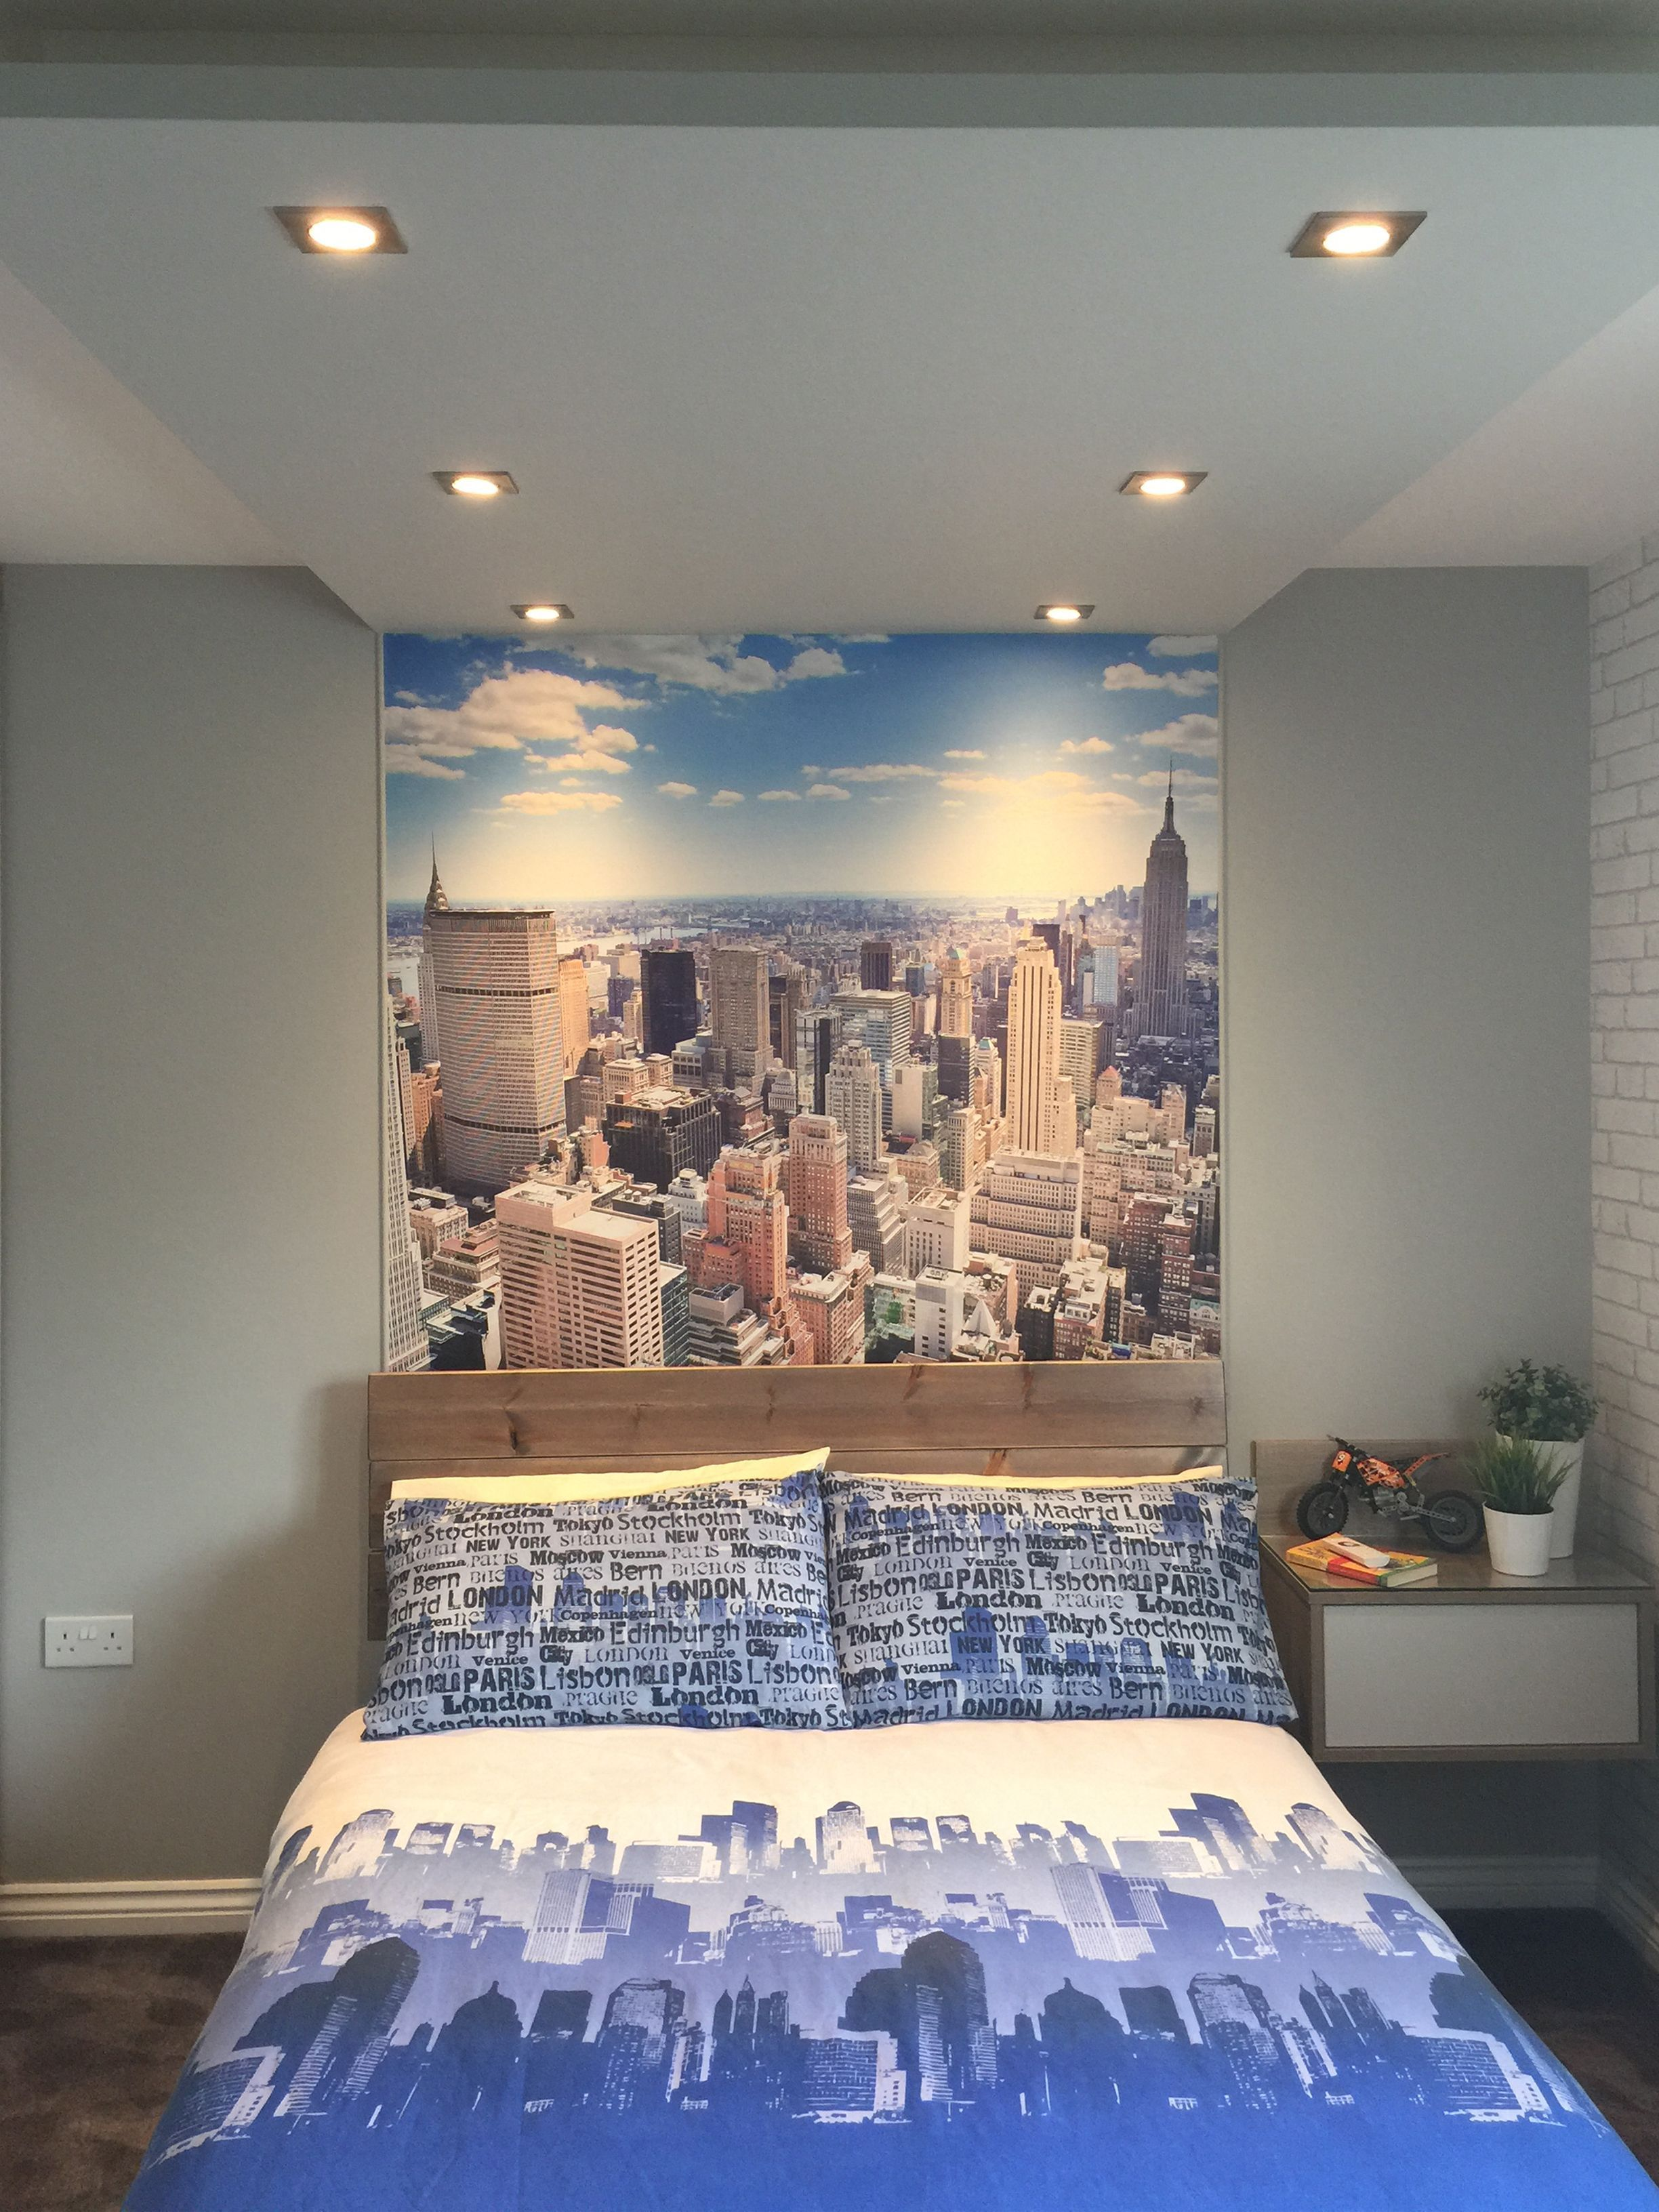 Greyscale New York Landscape Wall Mural Murals Wallpaper Home Wallpaper New York Bedroom Wallpaper Living Room